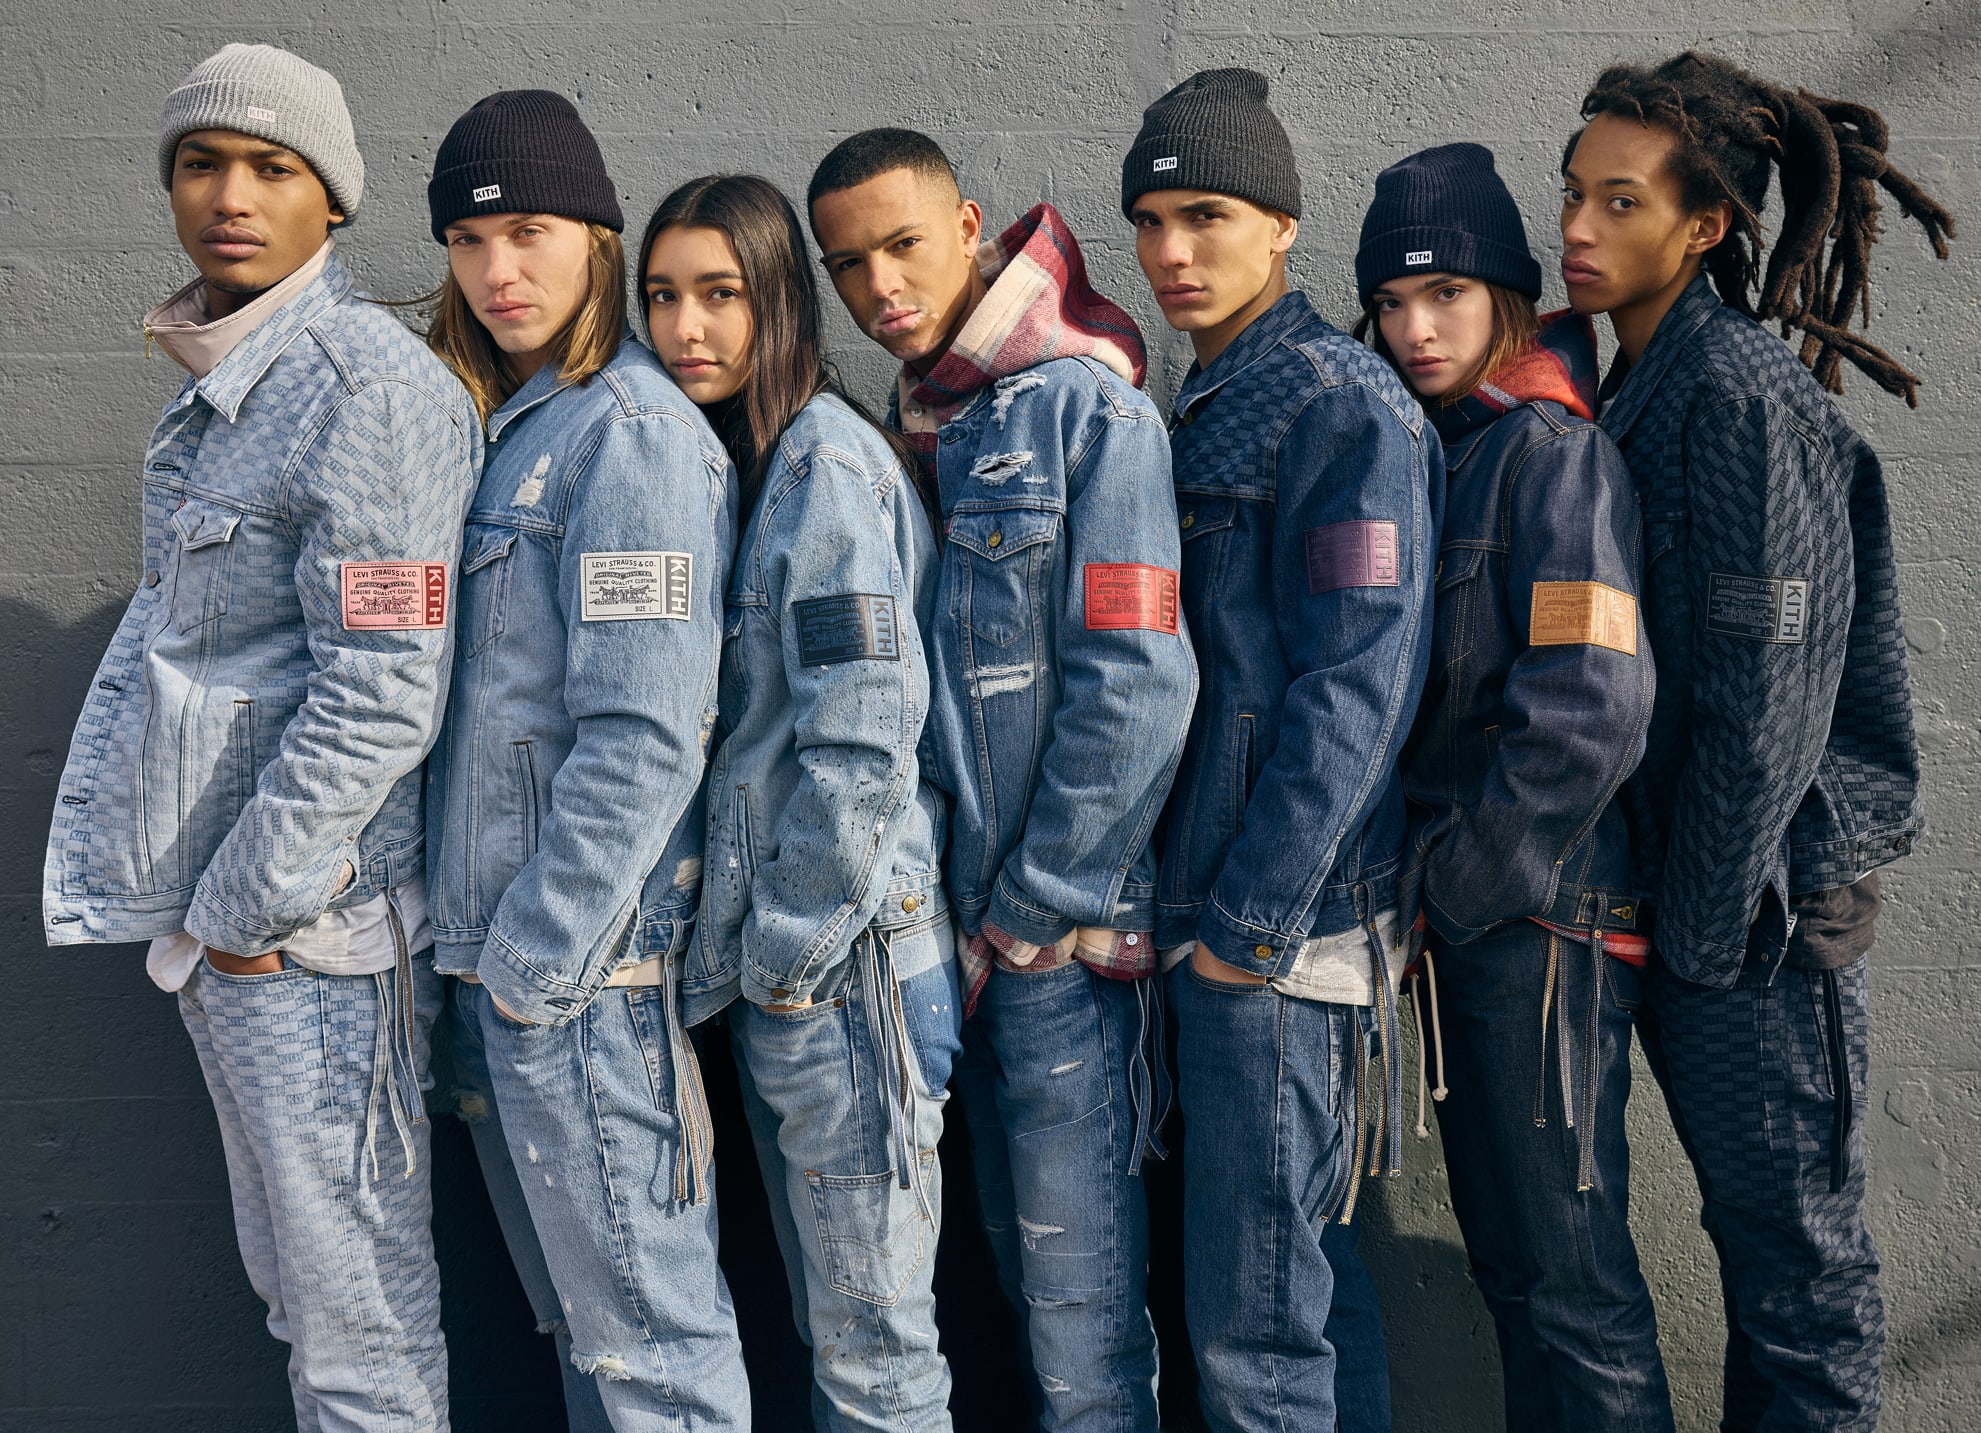 Kith Collaborations: The 10 Best Kith Apparel Collabs of All